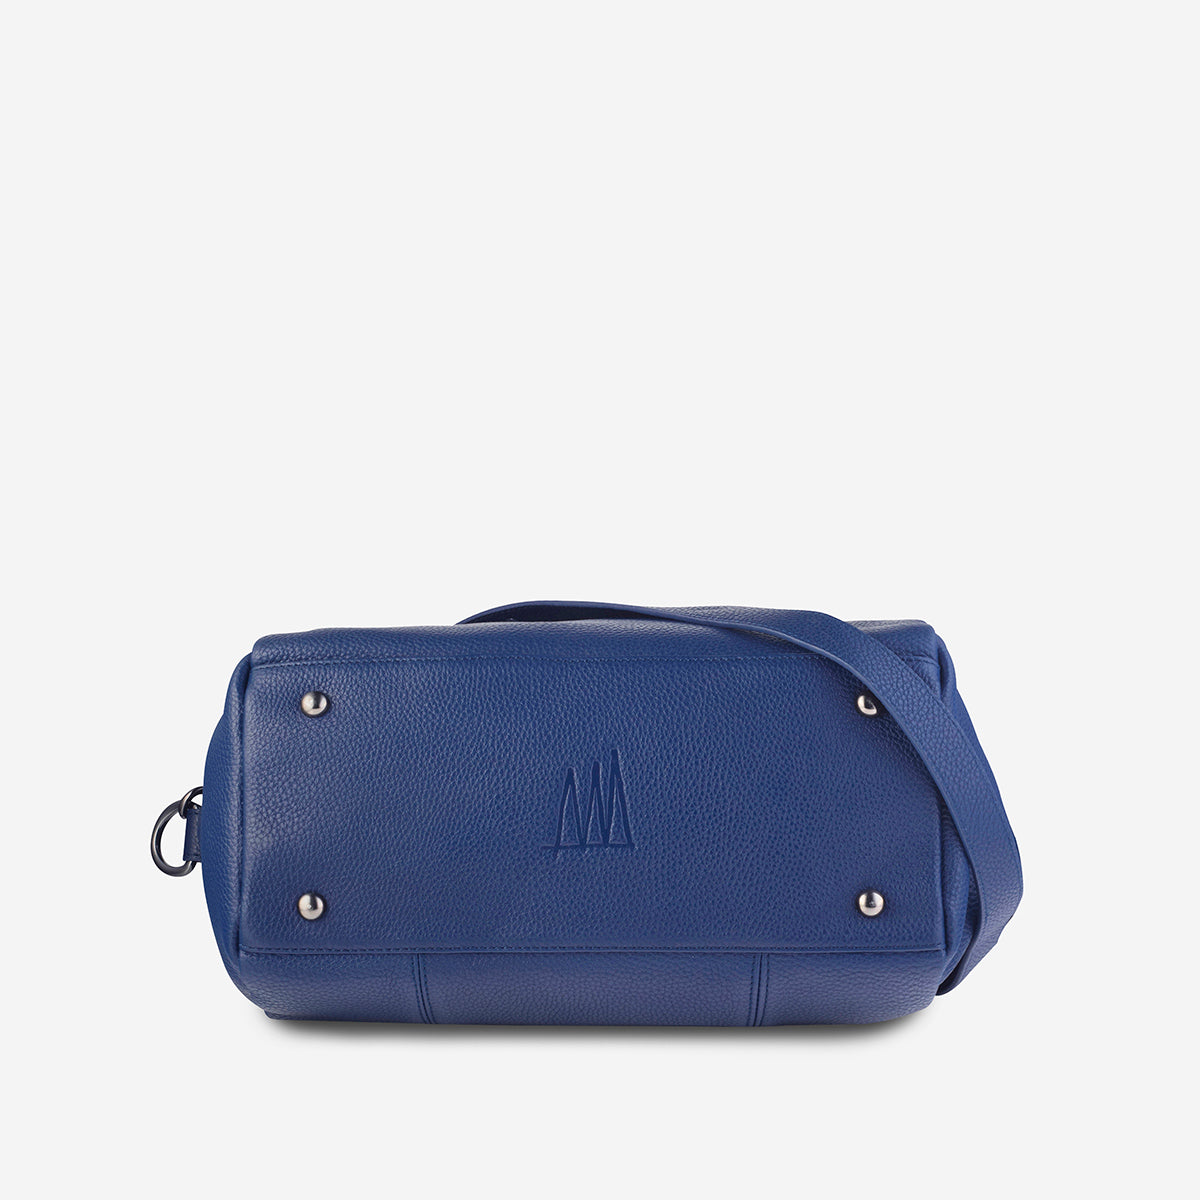 Status Anxiety Force Of Being Large Leather Bag - Blue